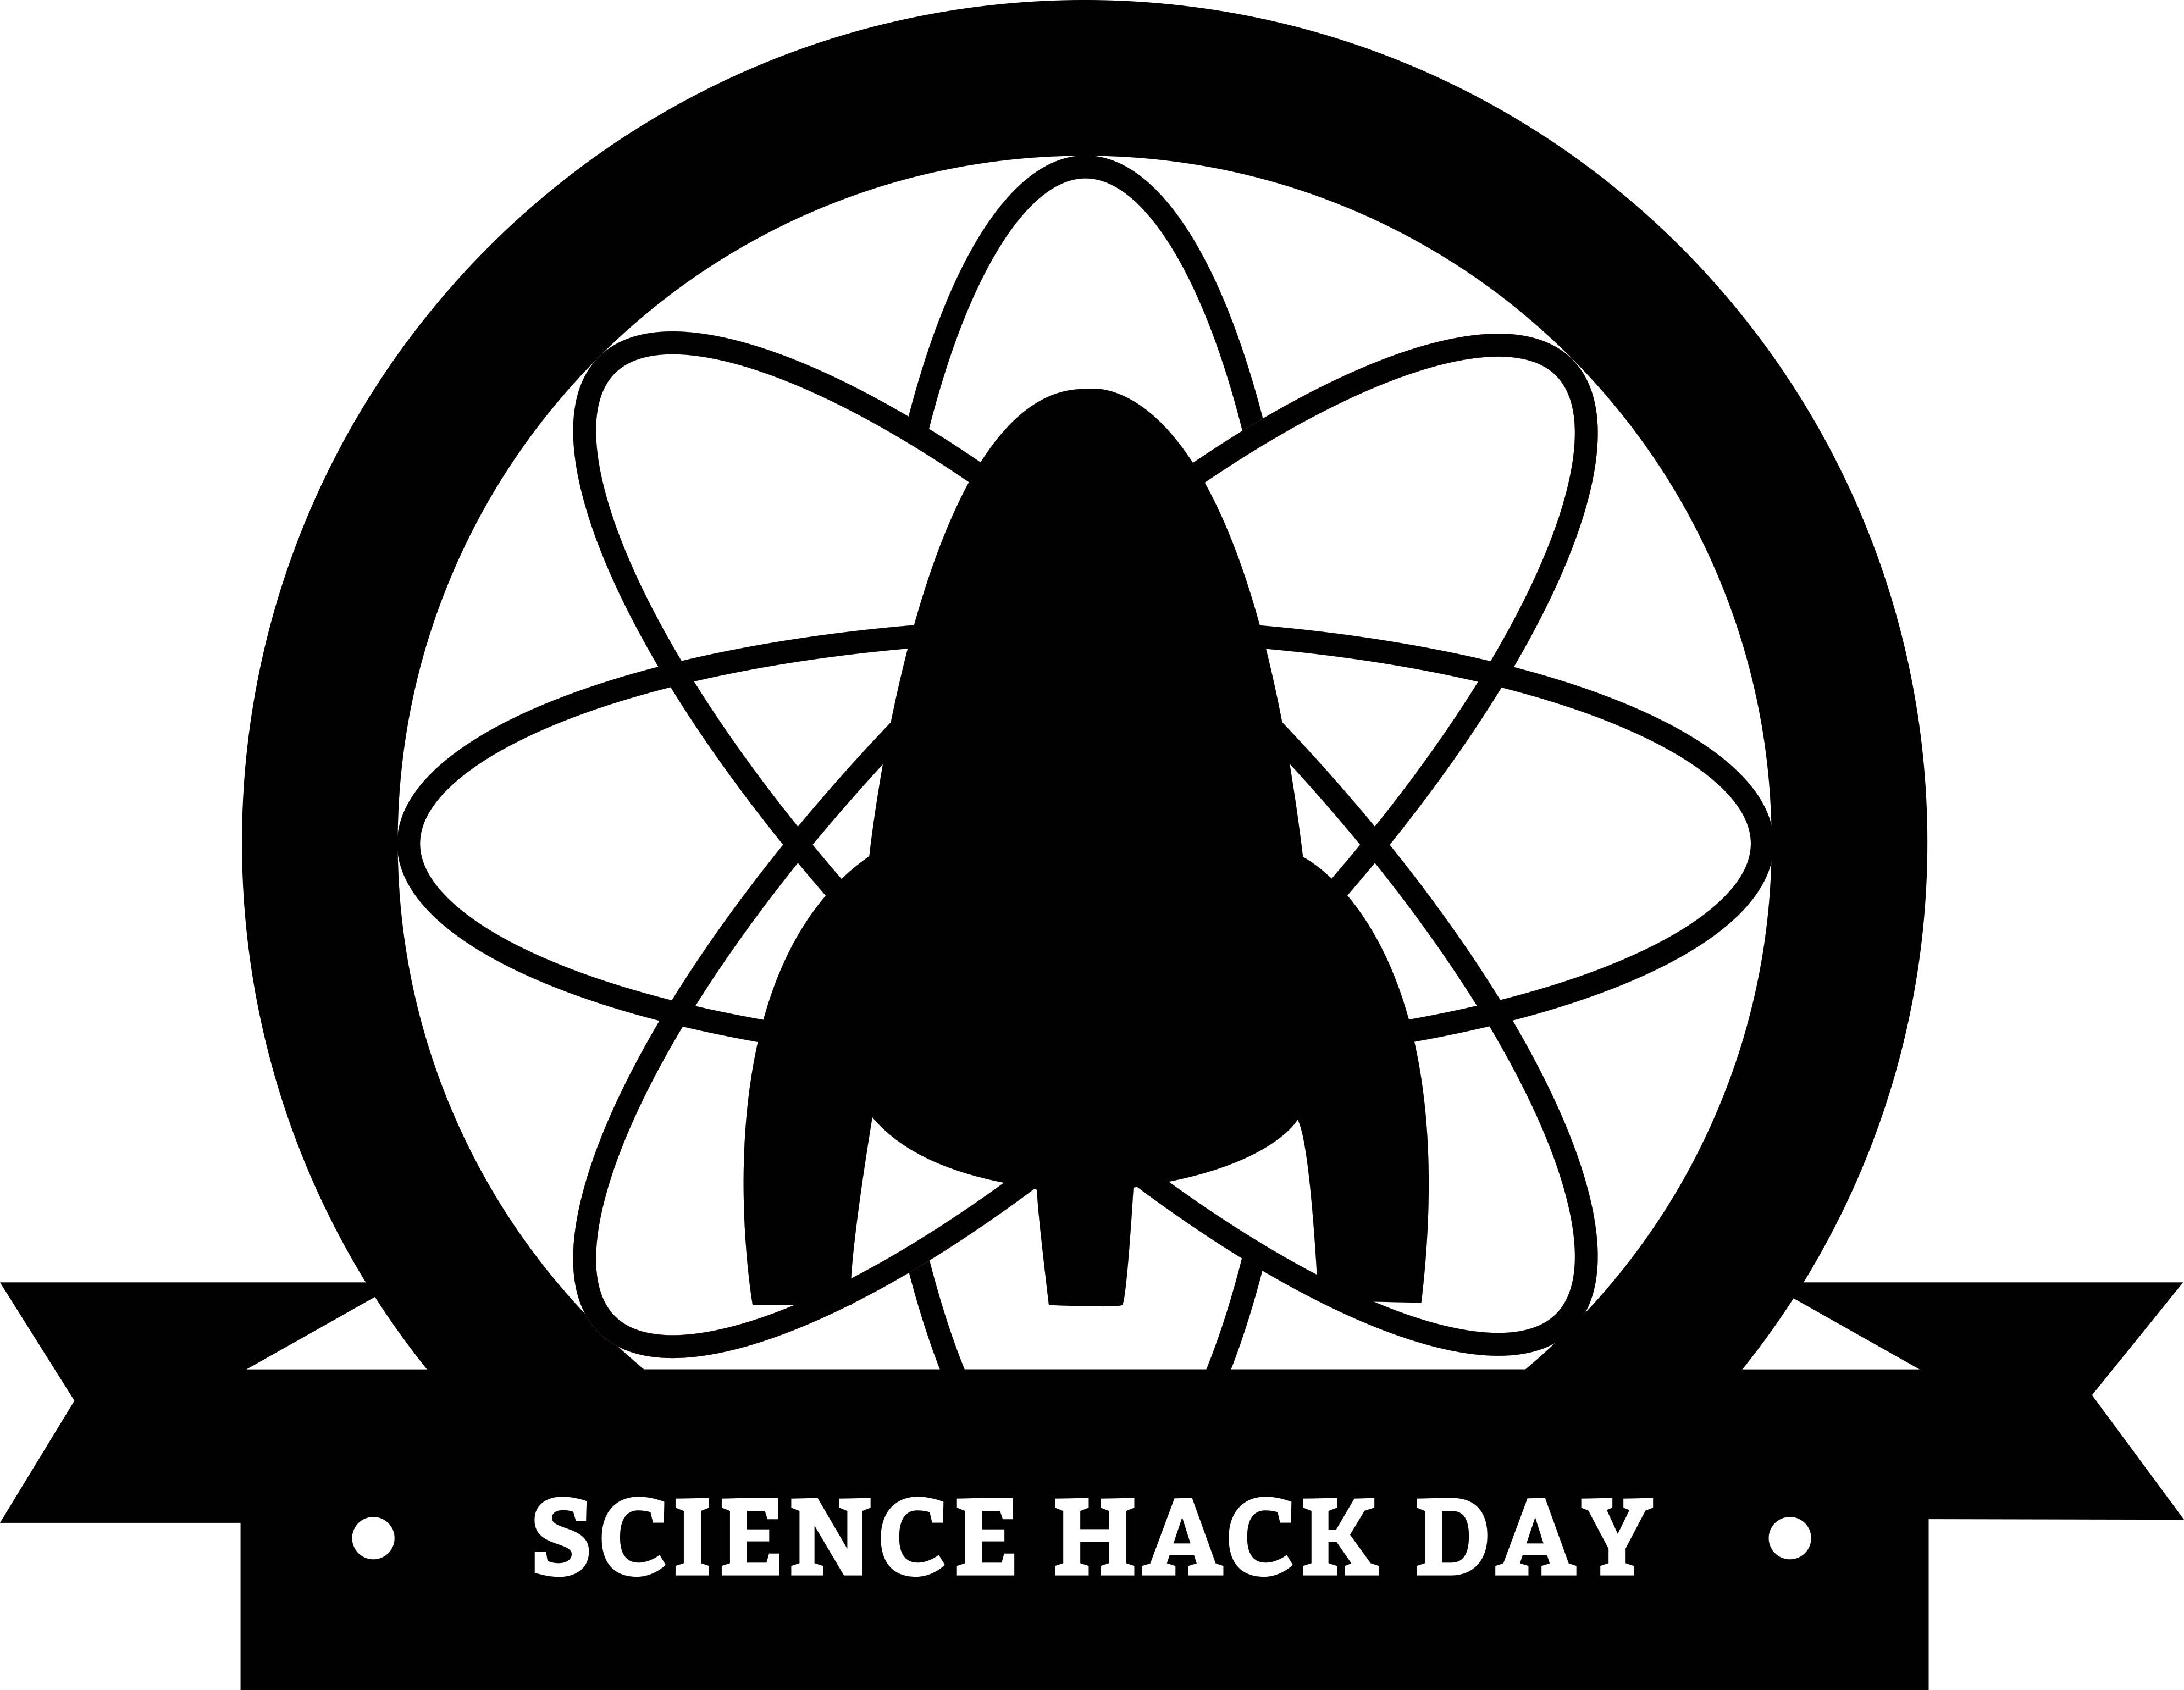 Science Hack Day » Science Hack Day Logos